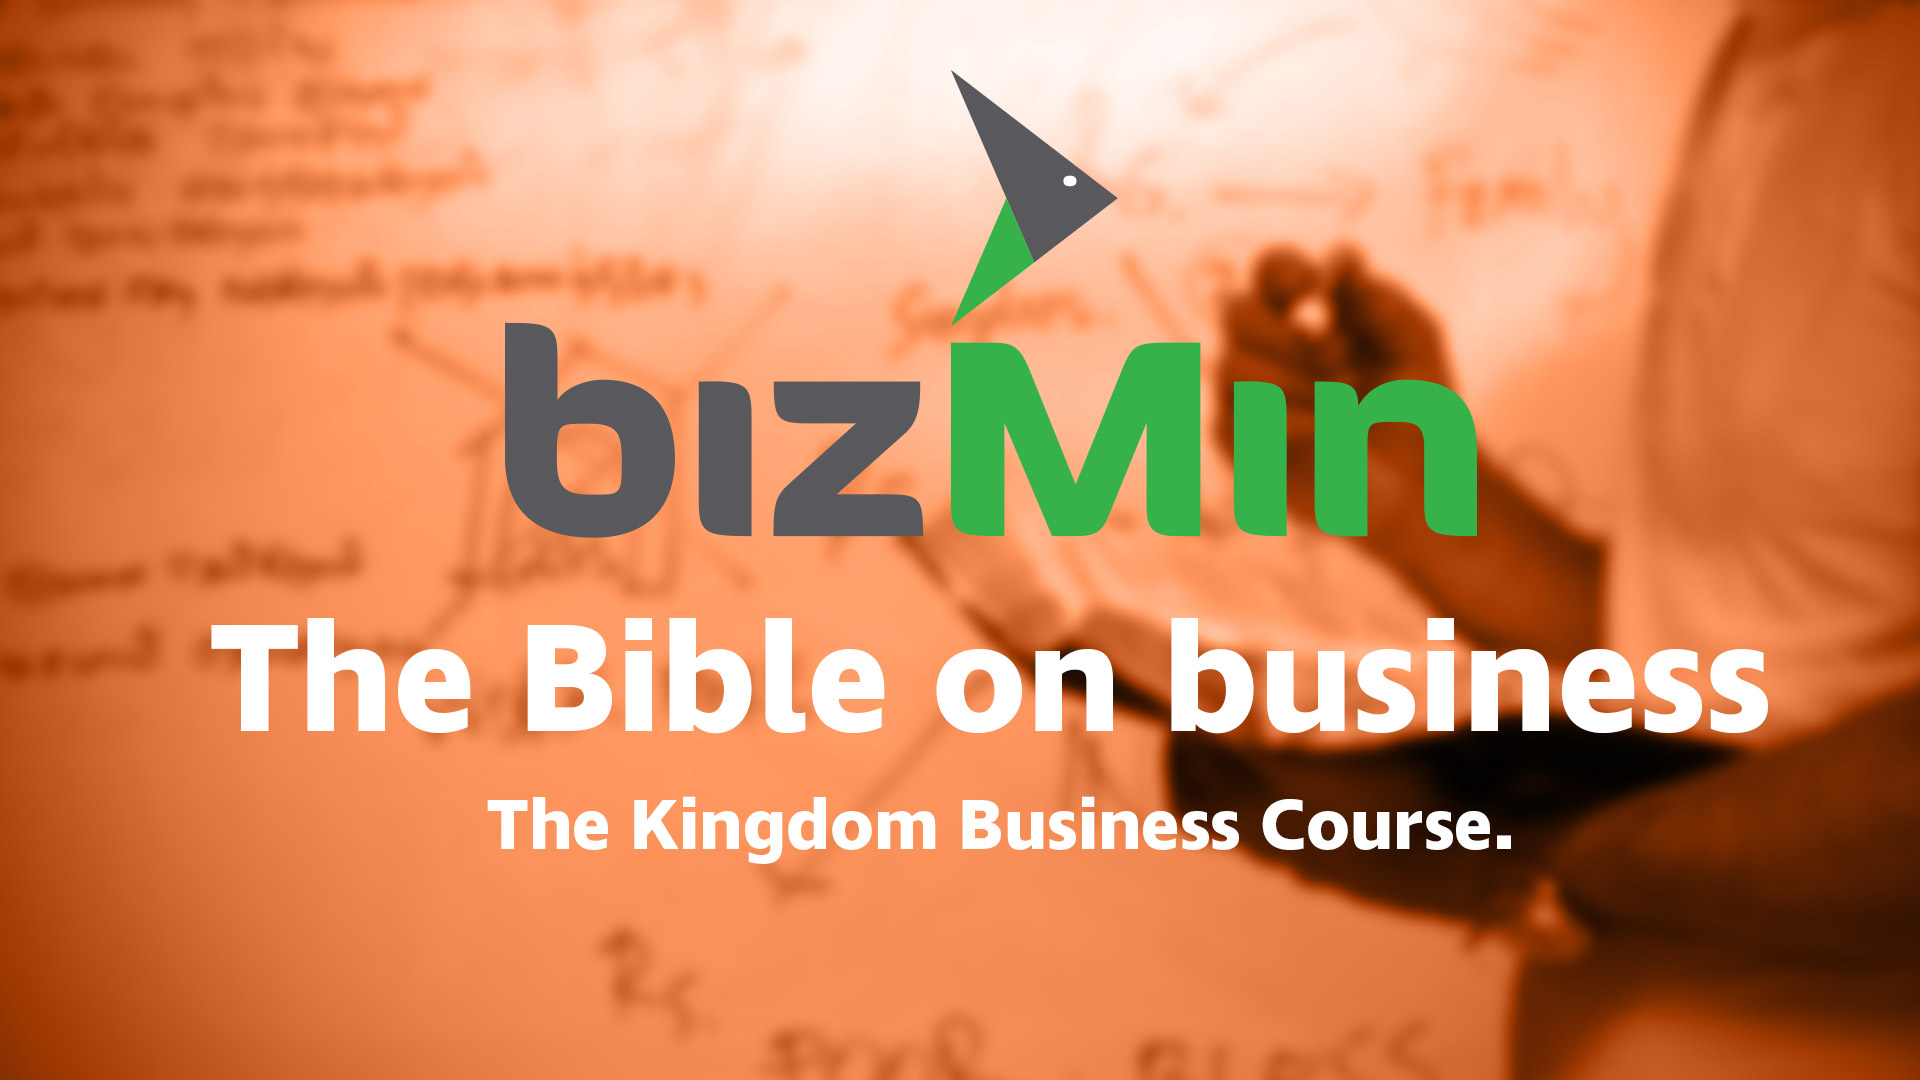 The Bible on Business video course